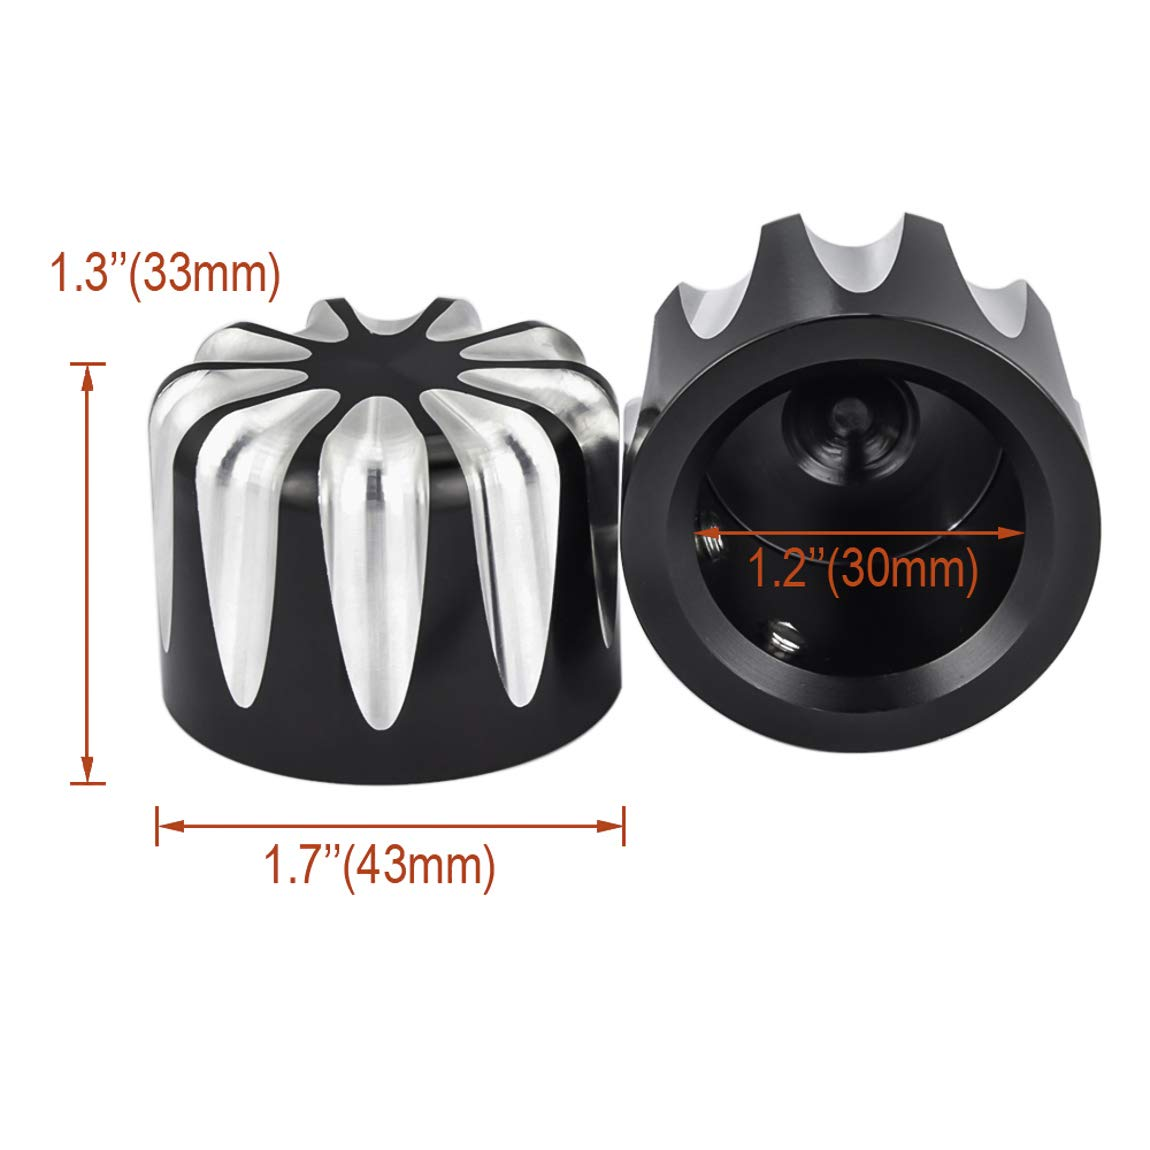 Lalaparts Black Front Axle Nut Cover Cap Compatible for Harley Softail Electra Road Glides Sportster